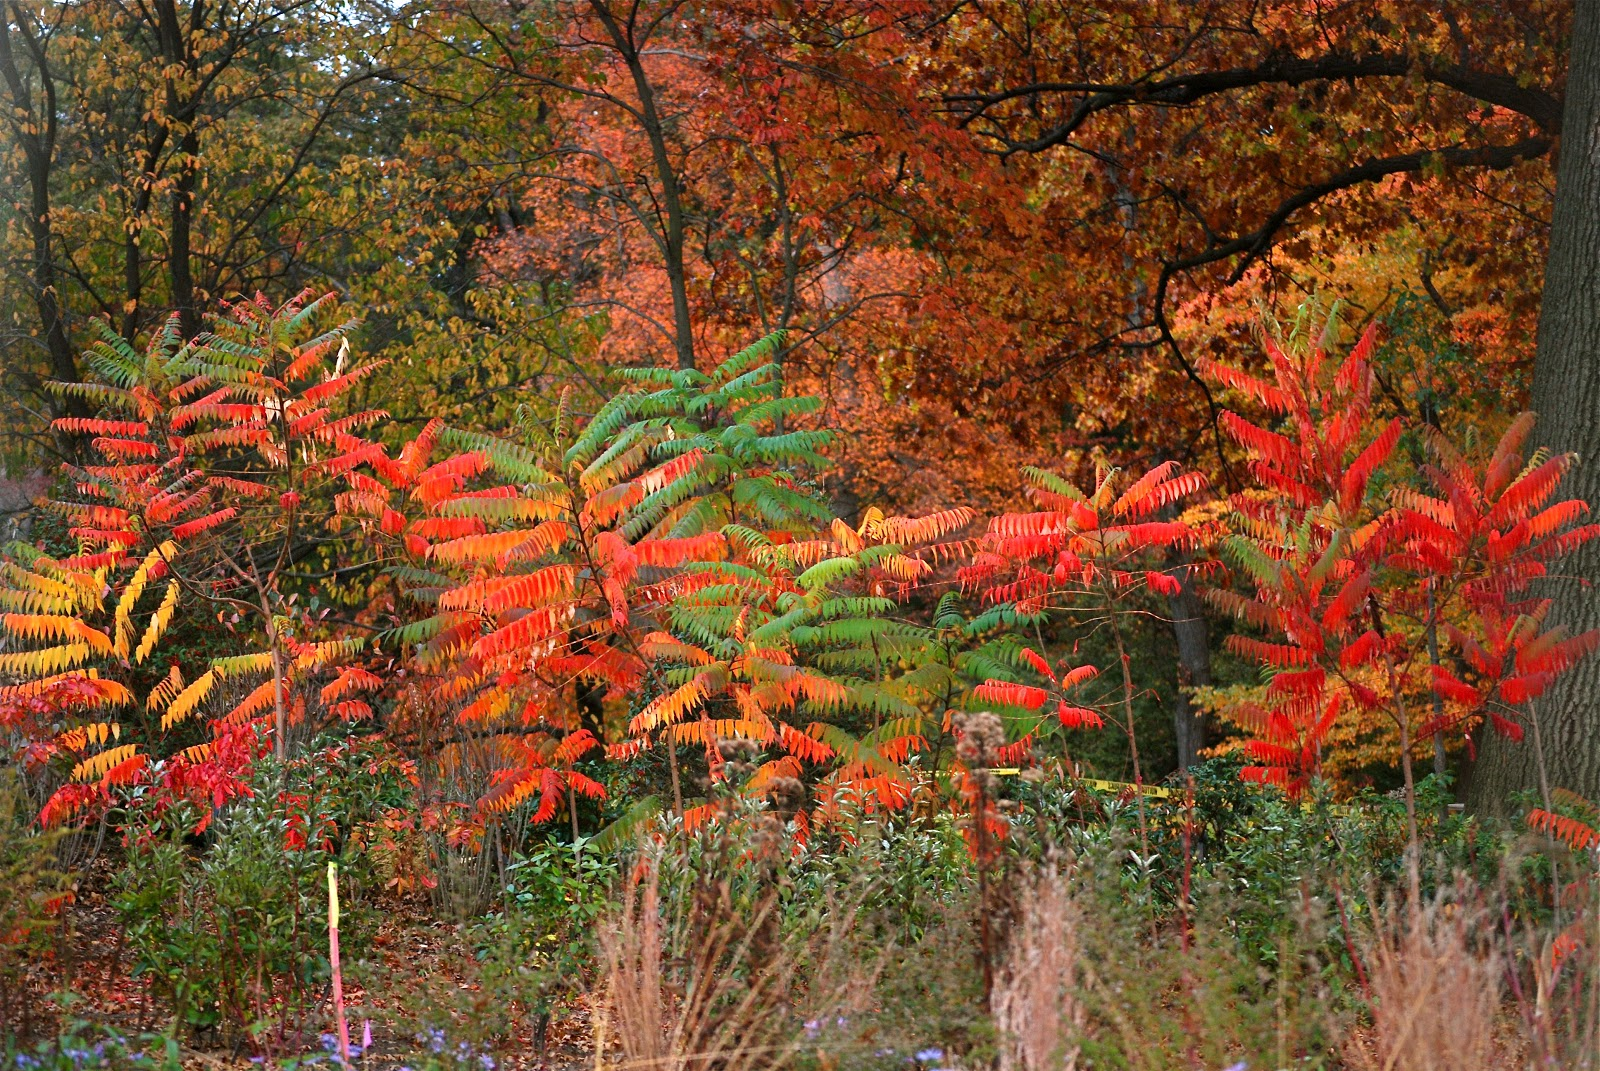 Autumn Foliage At The New York Botanical Garden